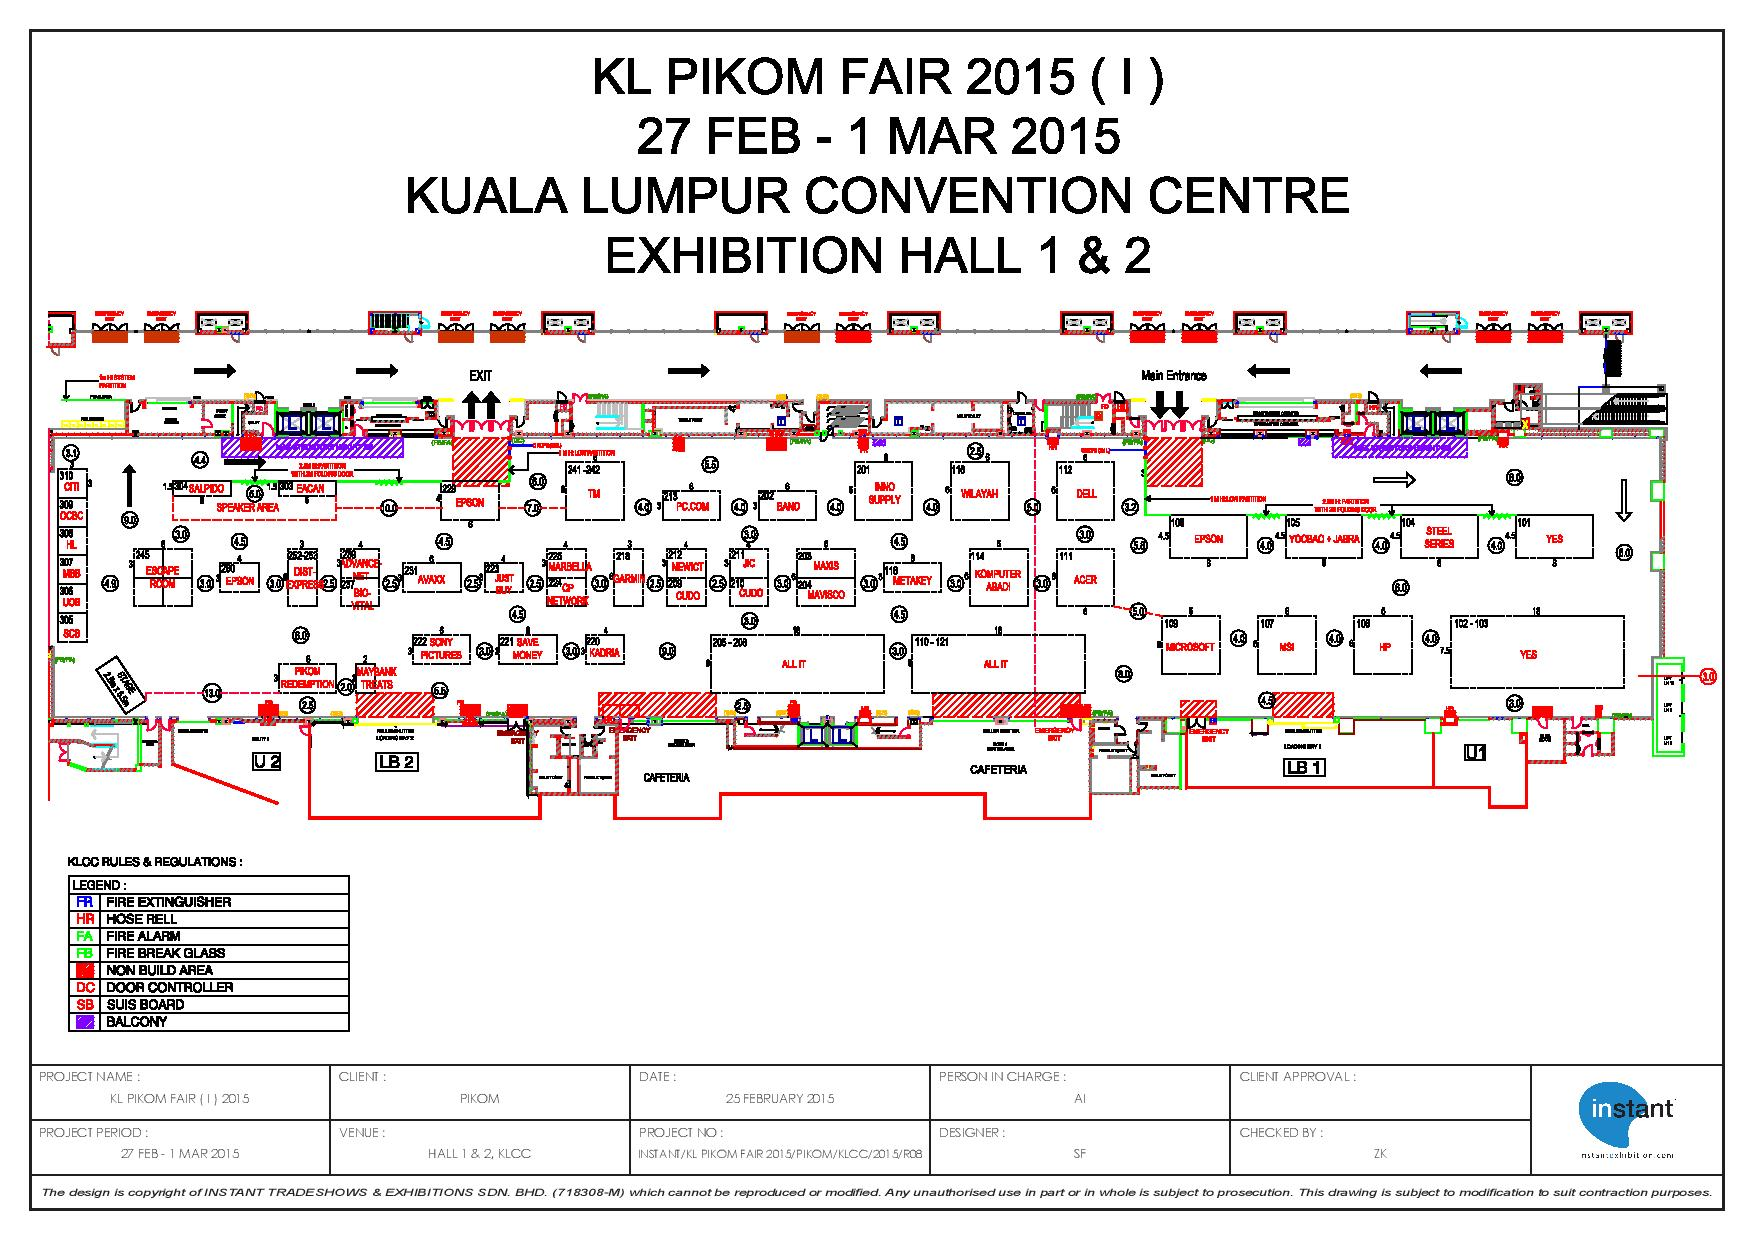 3d Exhibition Hall : Pikom fair i pricelists floorplans promotions